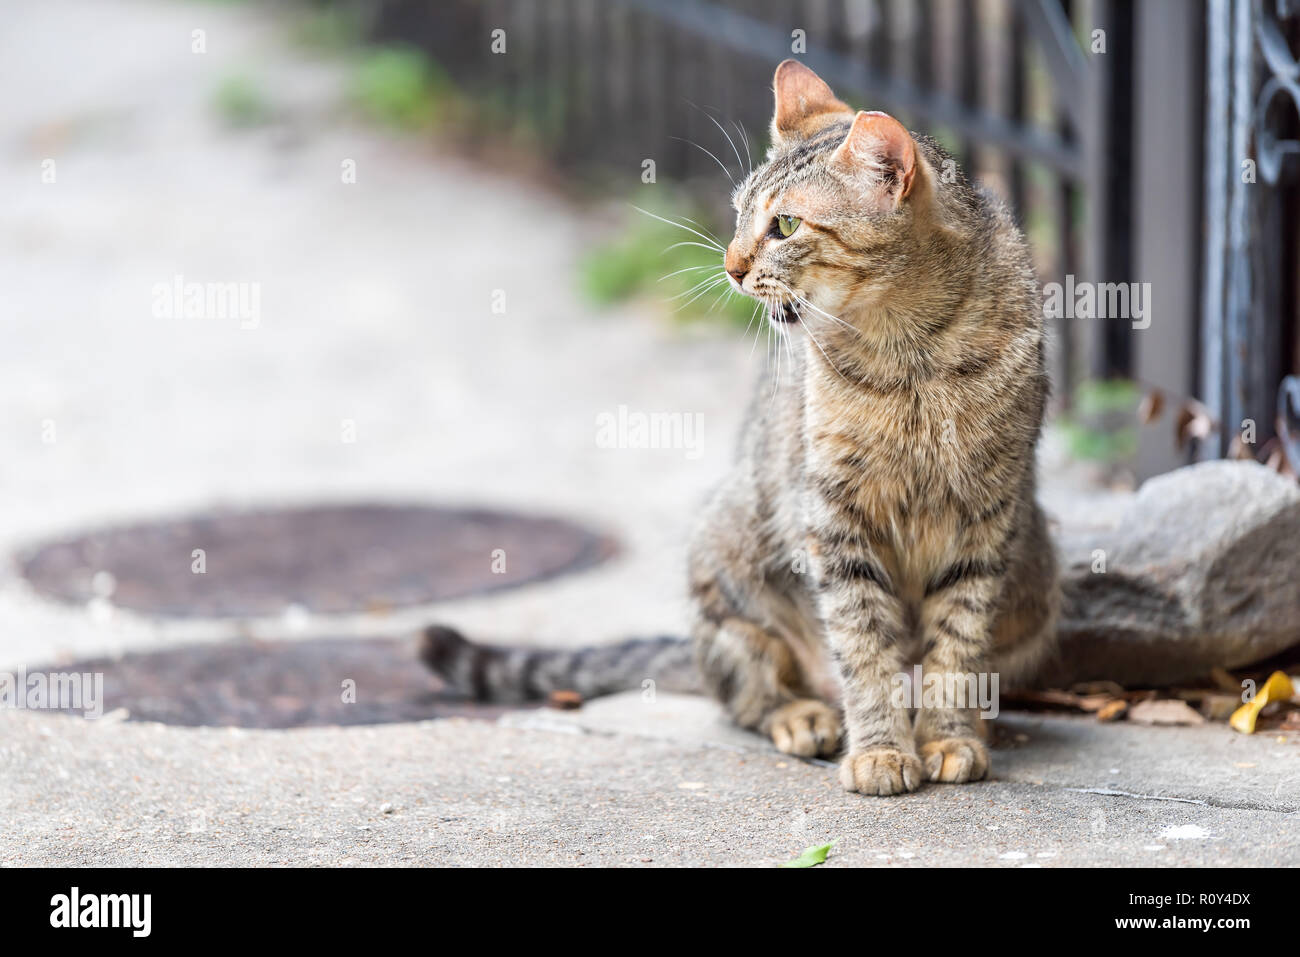 Stray tabby cat with green eyes sitting meowing, opened, opening mouth on sidewalk streets in New Orleans, Louisiana by fence - Stock Image